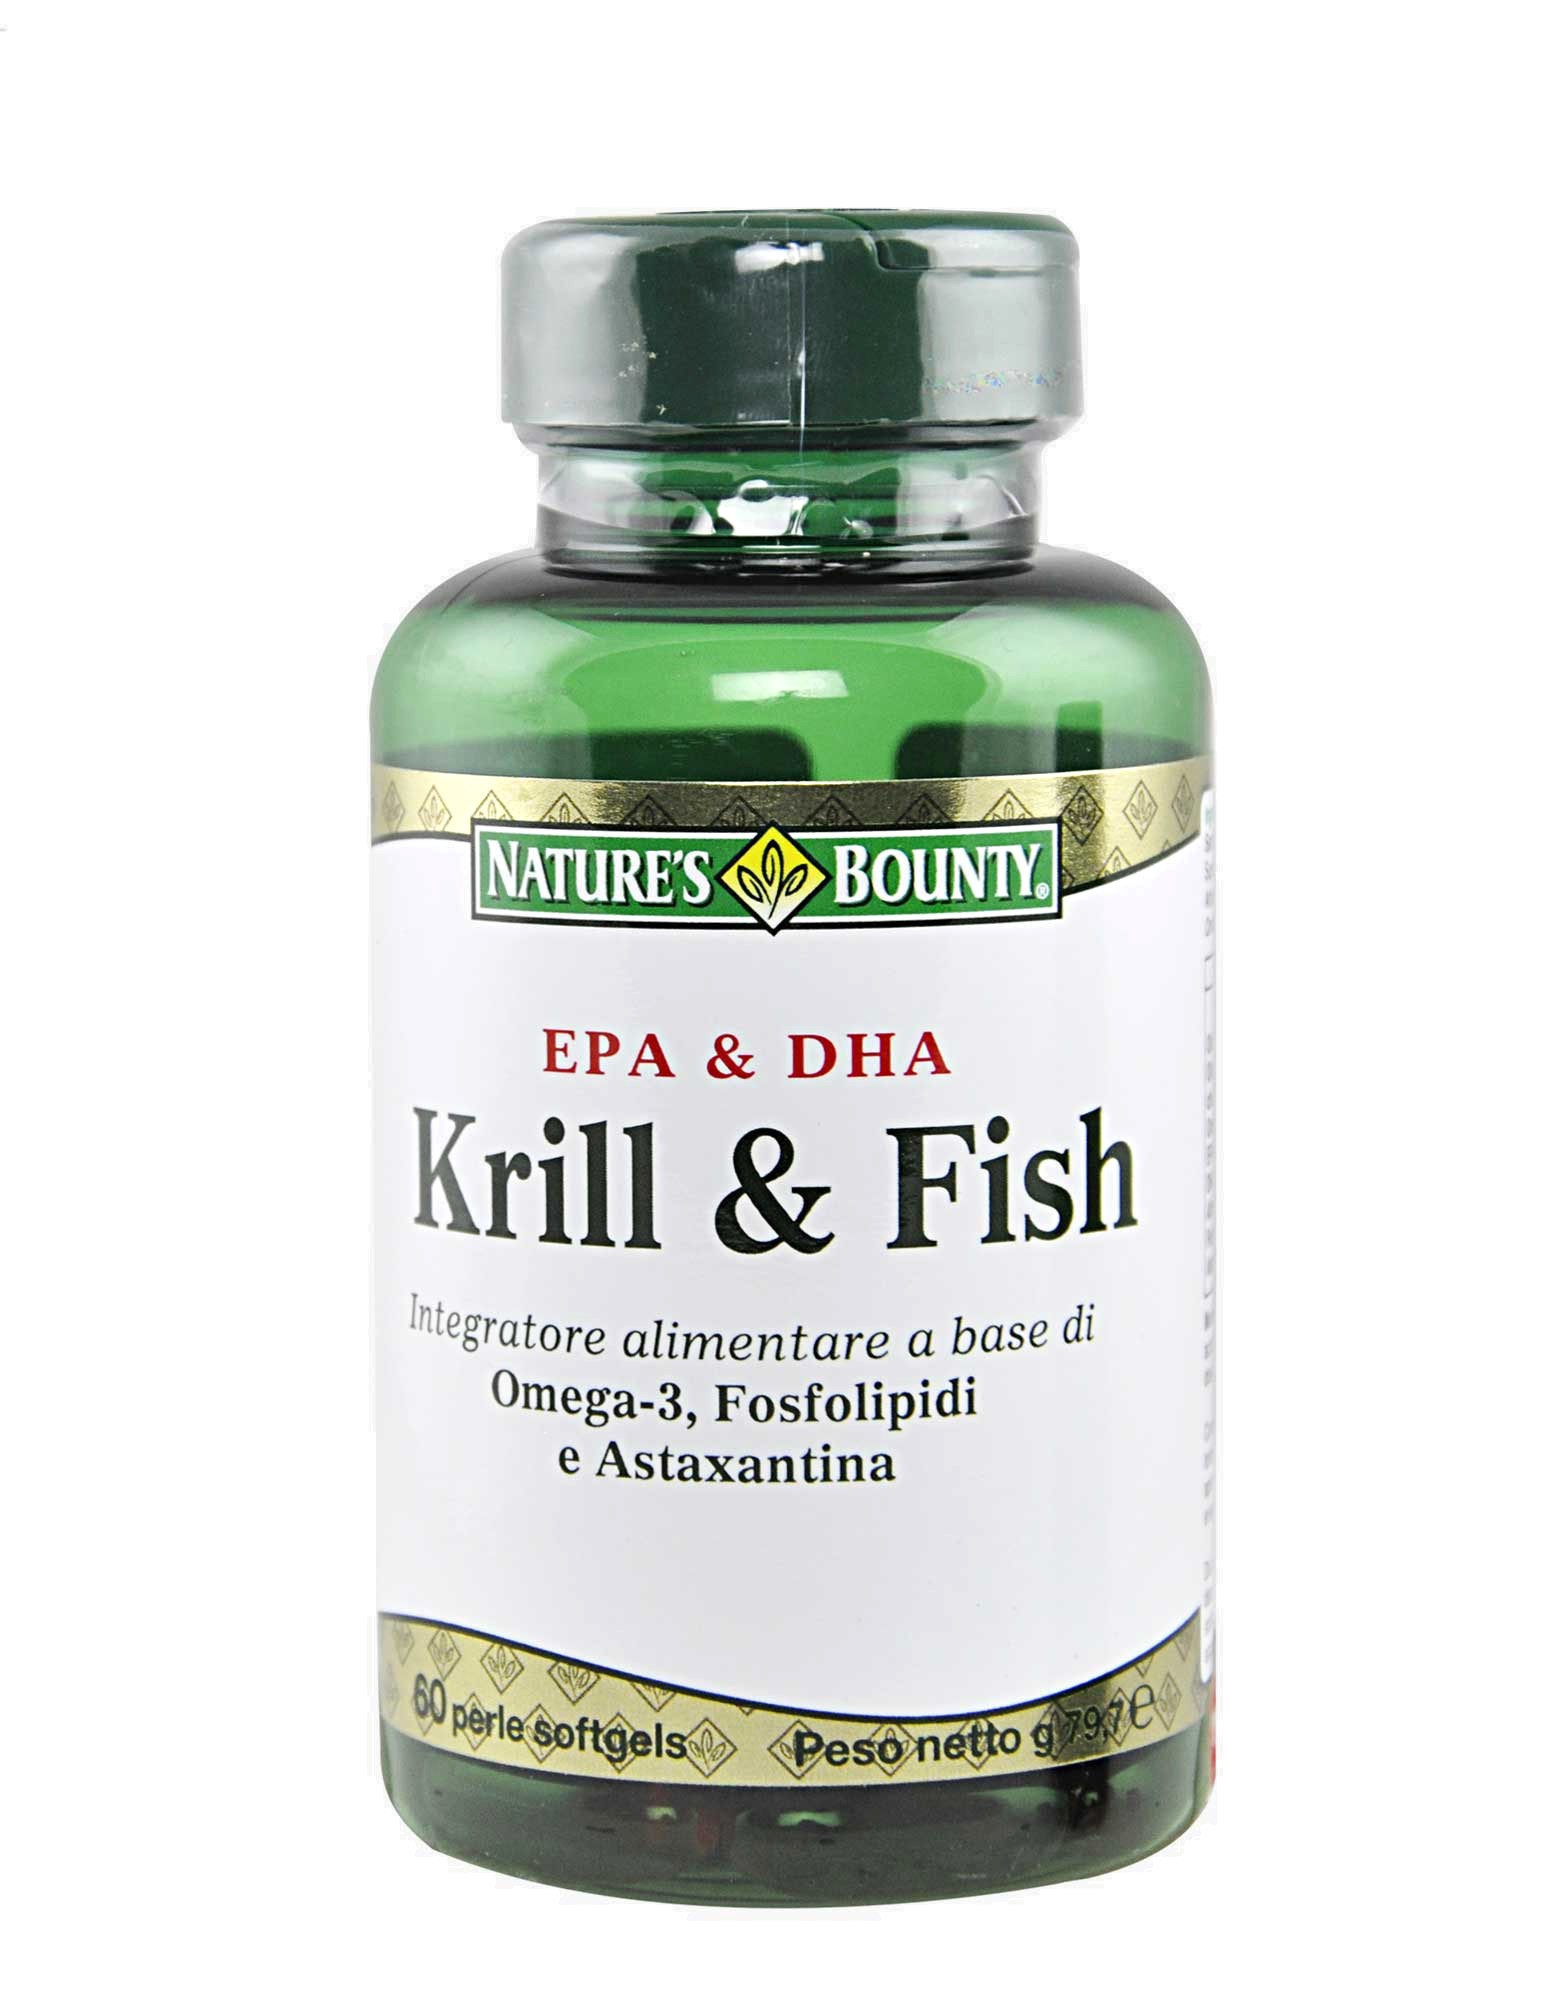 Krill fish by nature 39 s bounty 60 softgel pearls 35 20 for Fish oil pearls